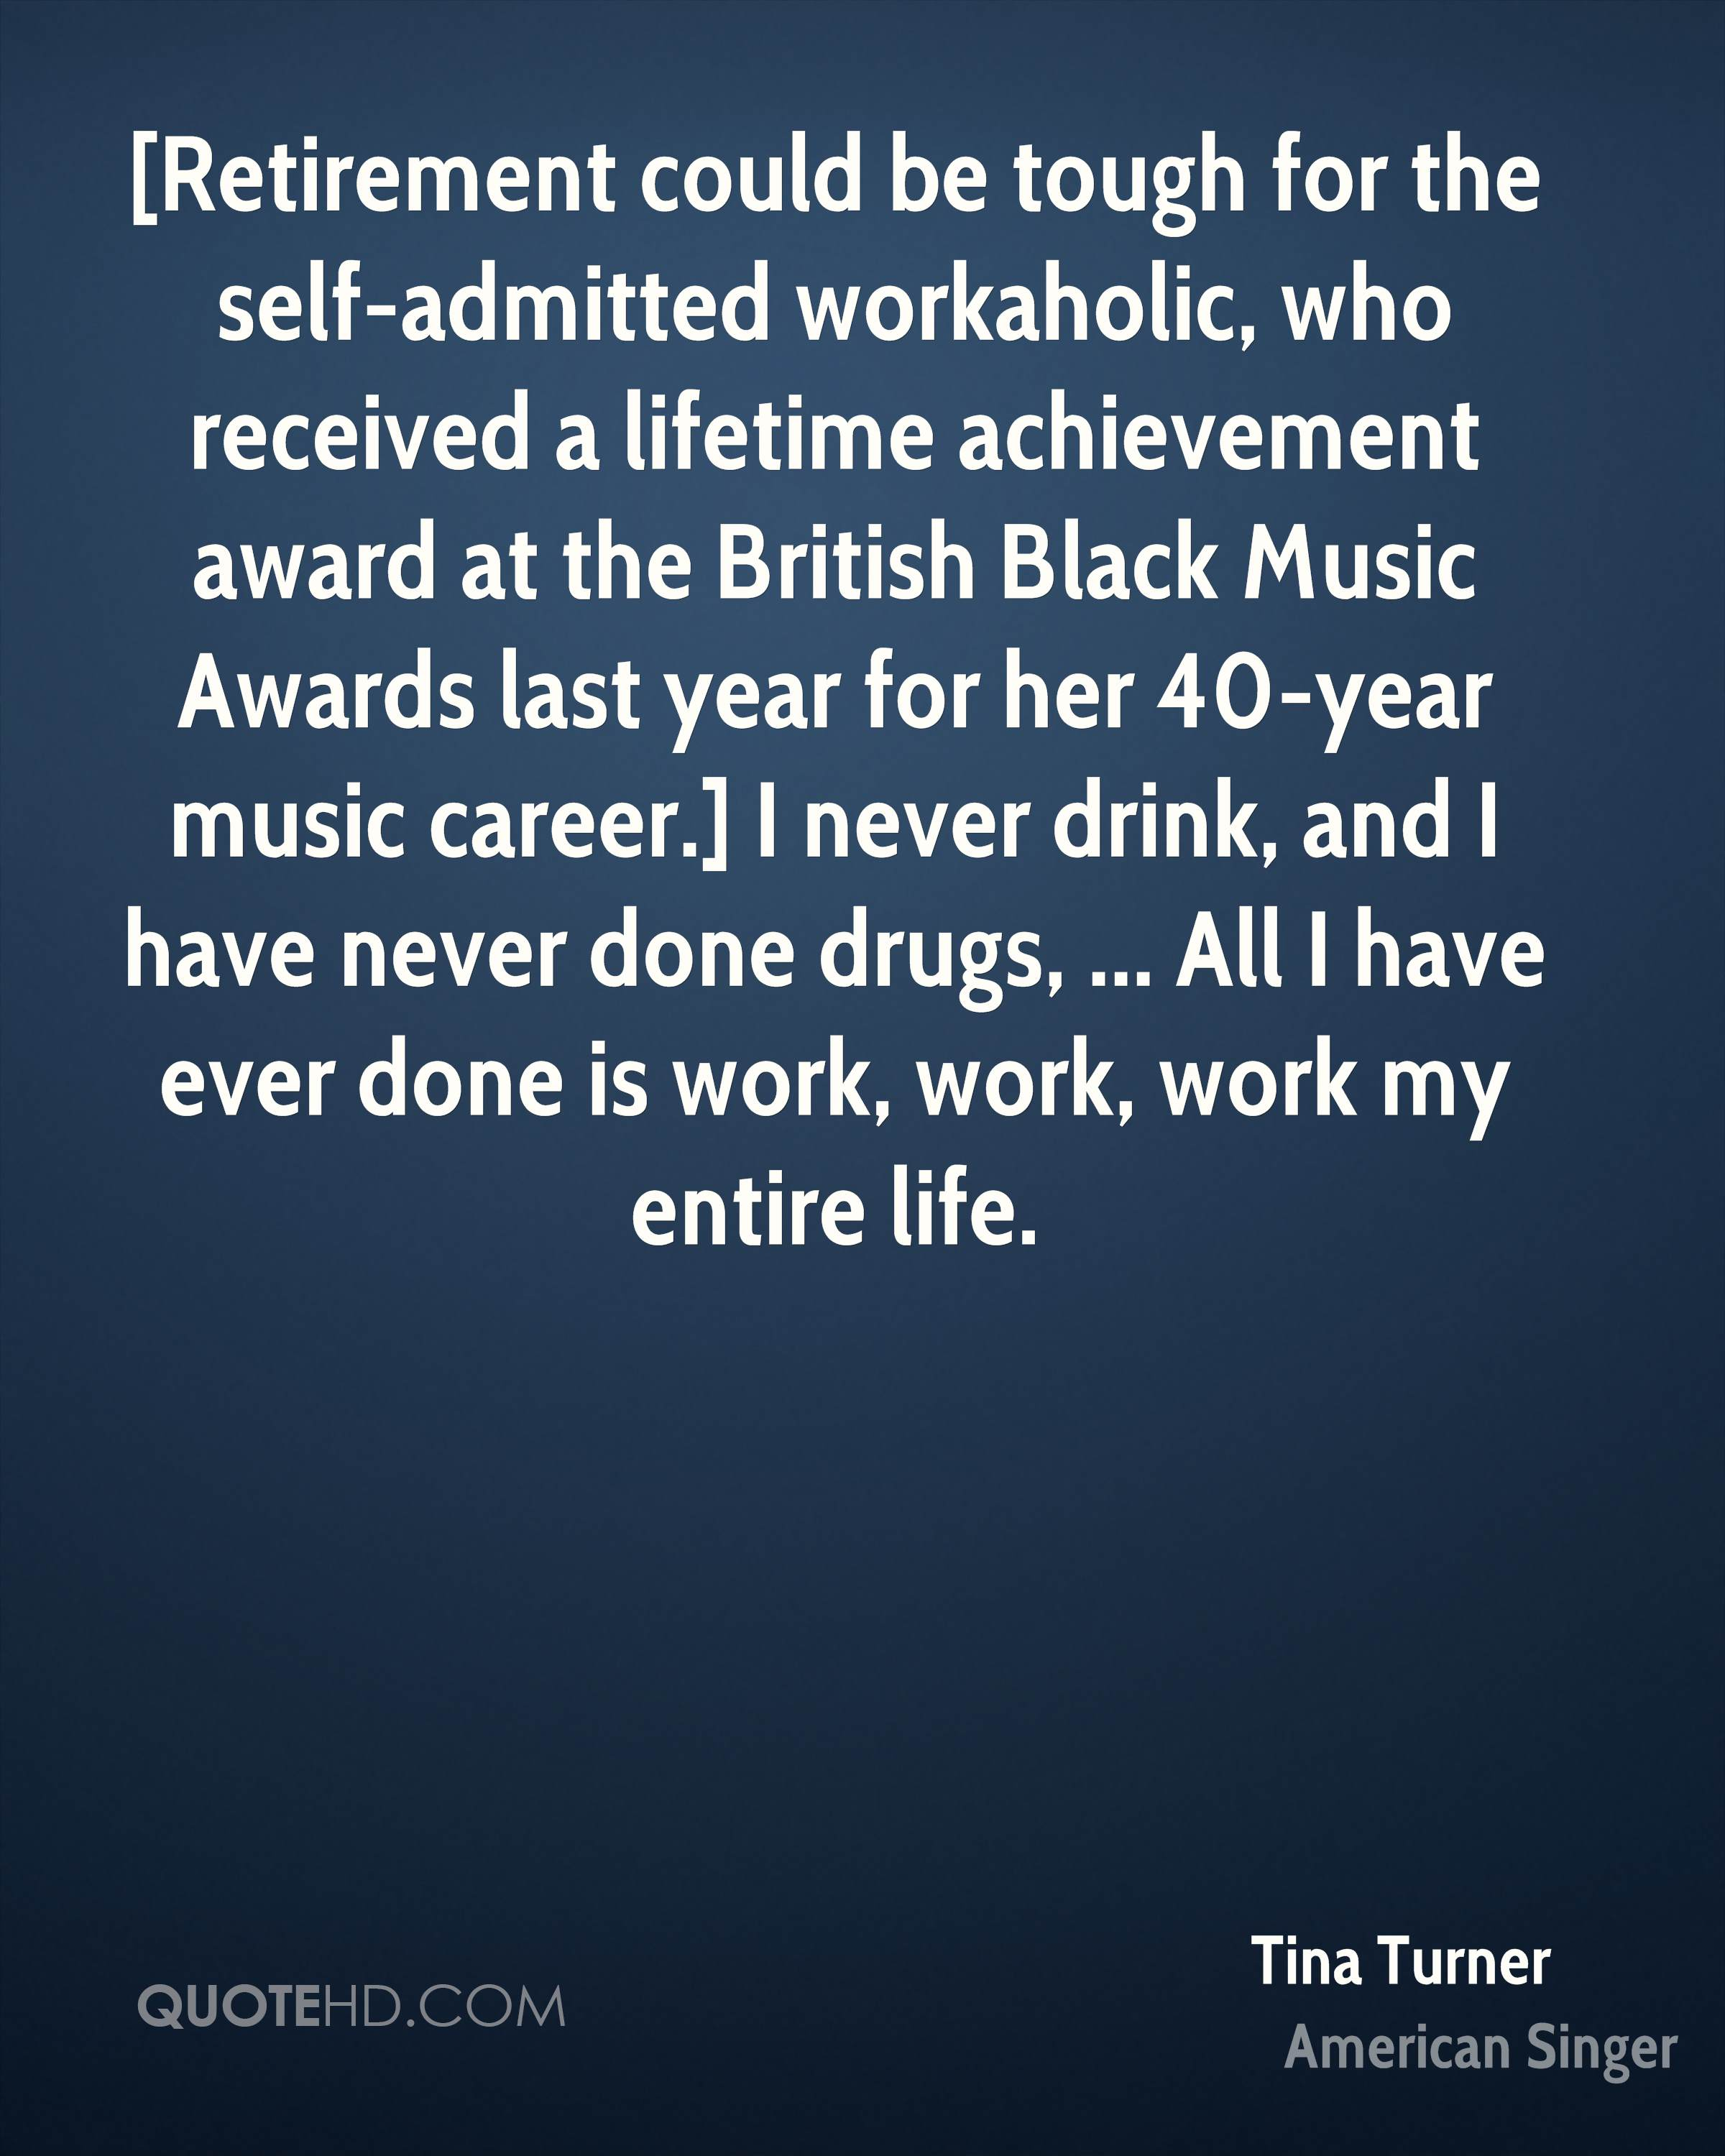 [Retirement could be tough for the self-admitted workaholic, who received a lifetime achievement award at the British Black Music Awards last year for her 40-year music career.] I never drink, and I have never done drugs, ... All I have ever done is work, work, work my entire life.